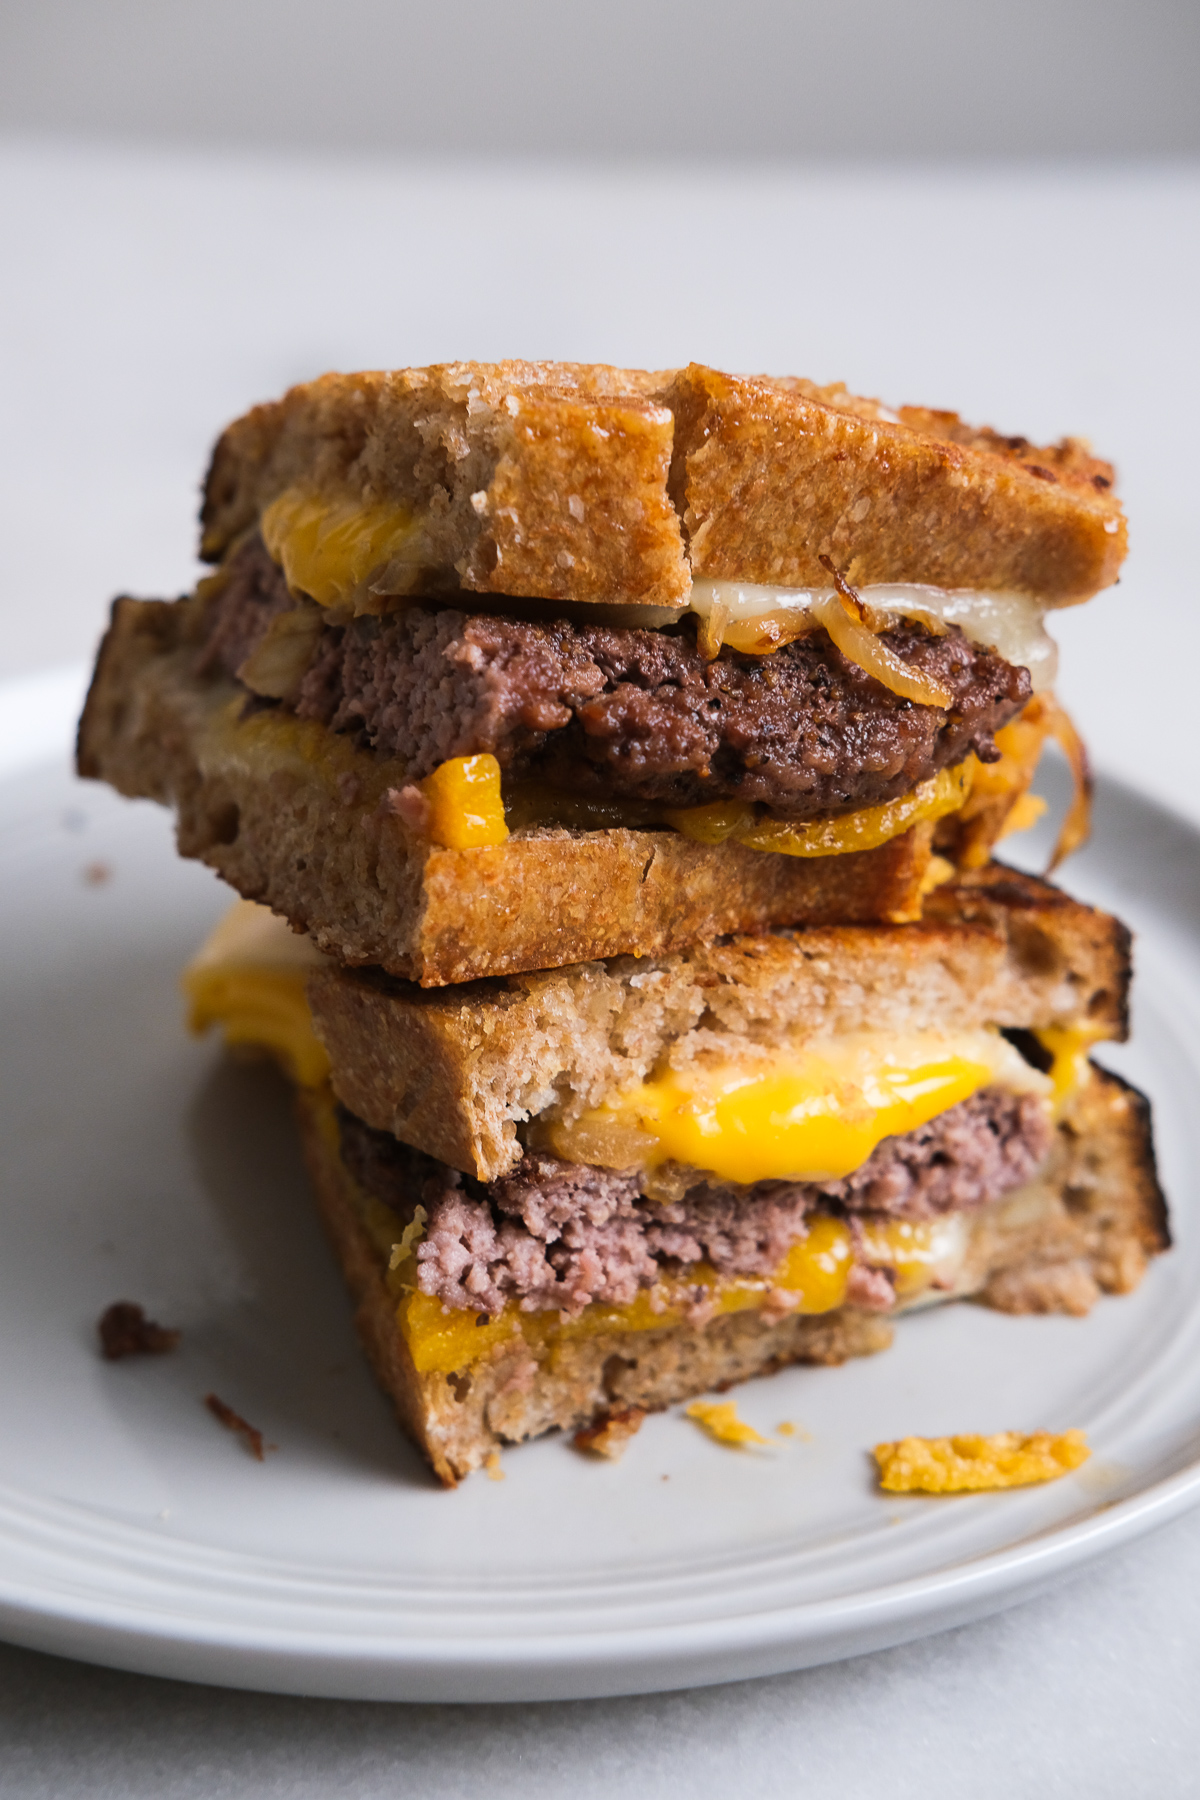 patty melt cut in half on a plate